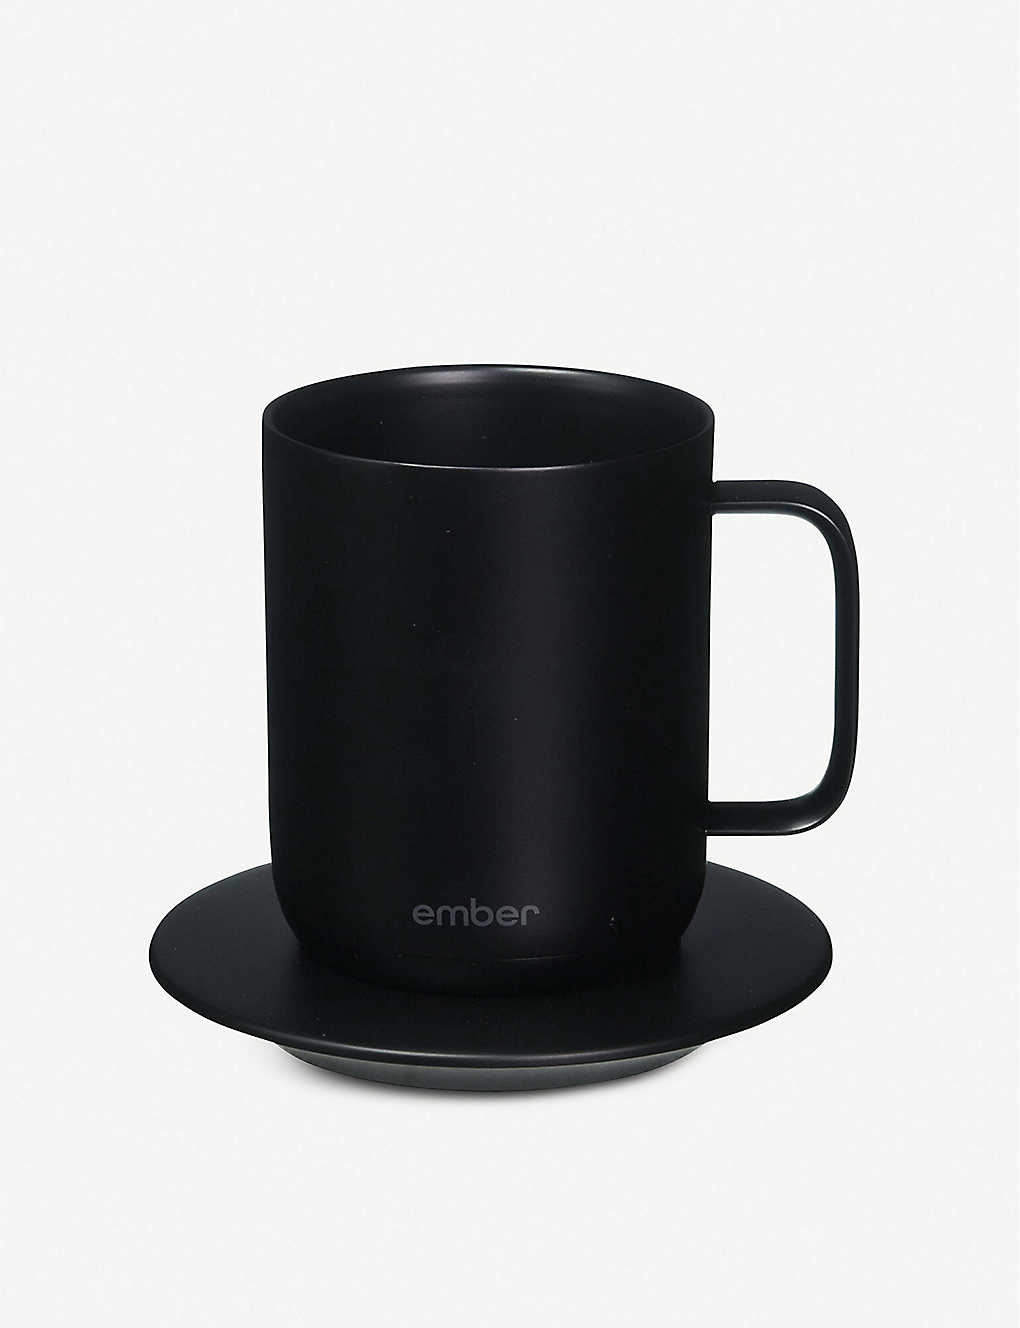 SMARTECH: Ember smart coffee mug 295ml